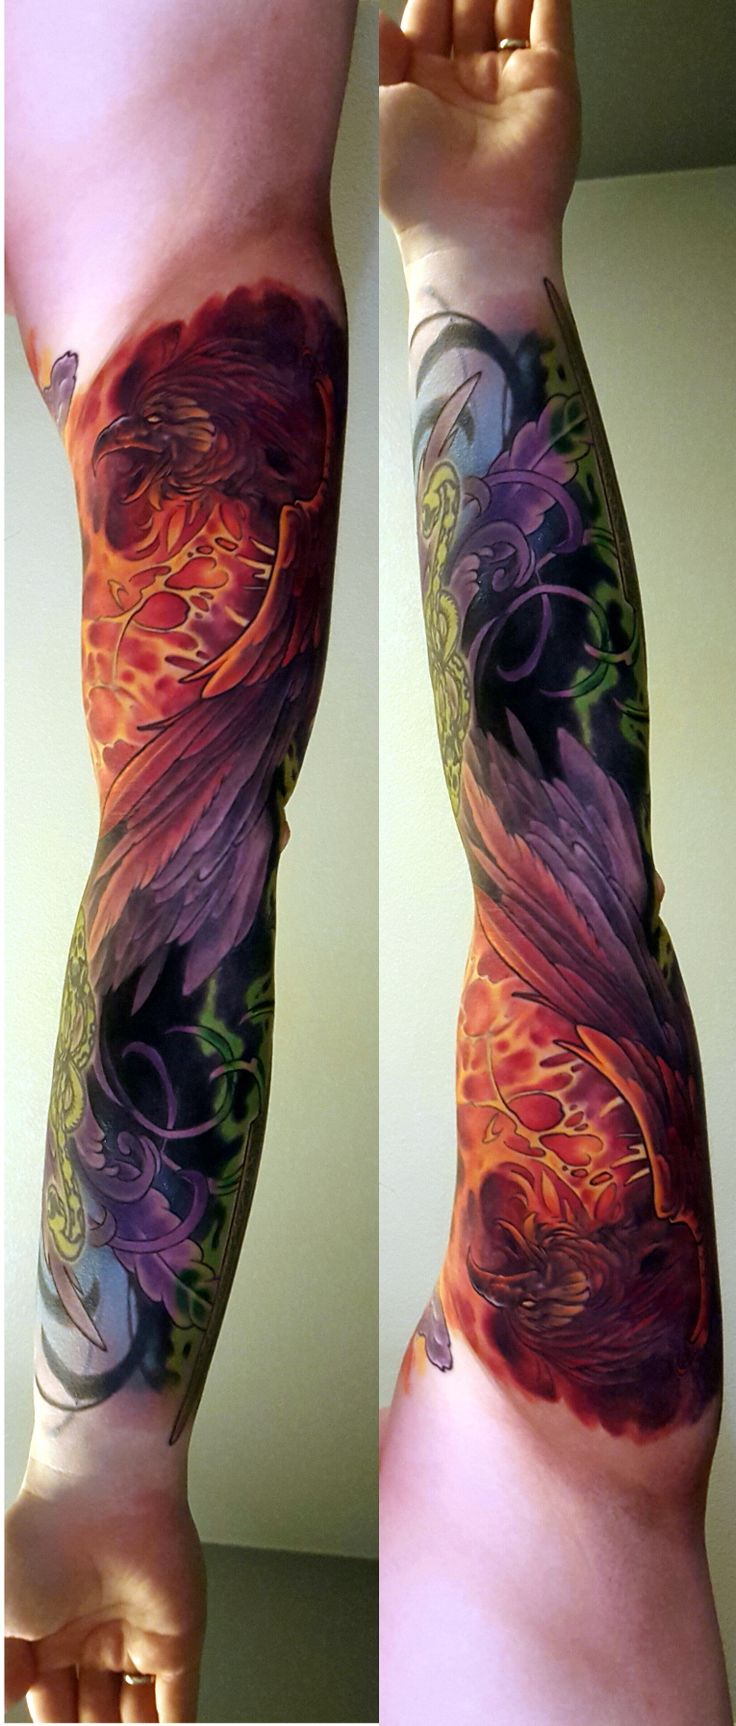 21 best tattoo images on pinterest gorgeous tattoos a for Eau claire tattoo